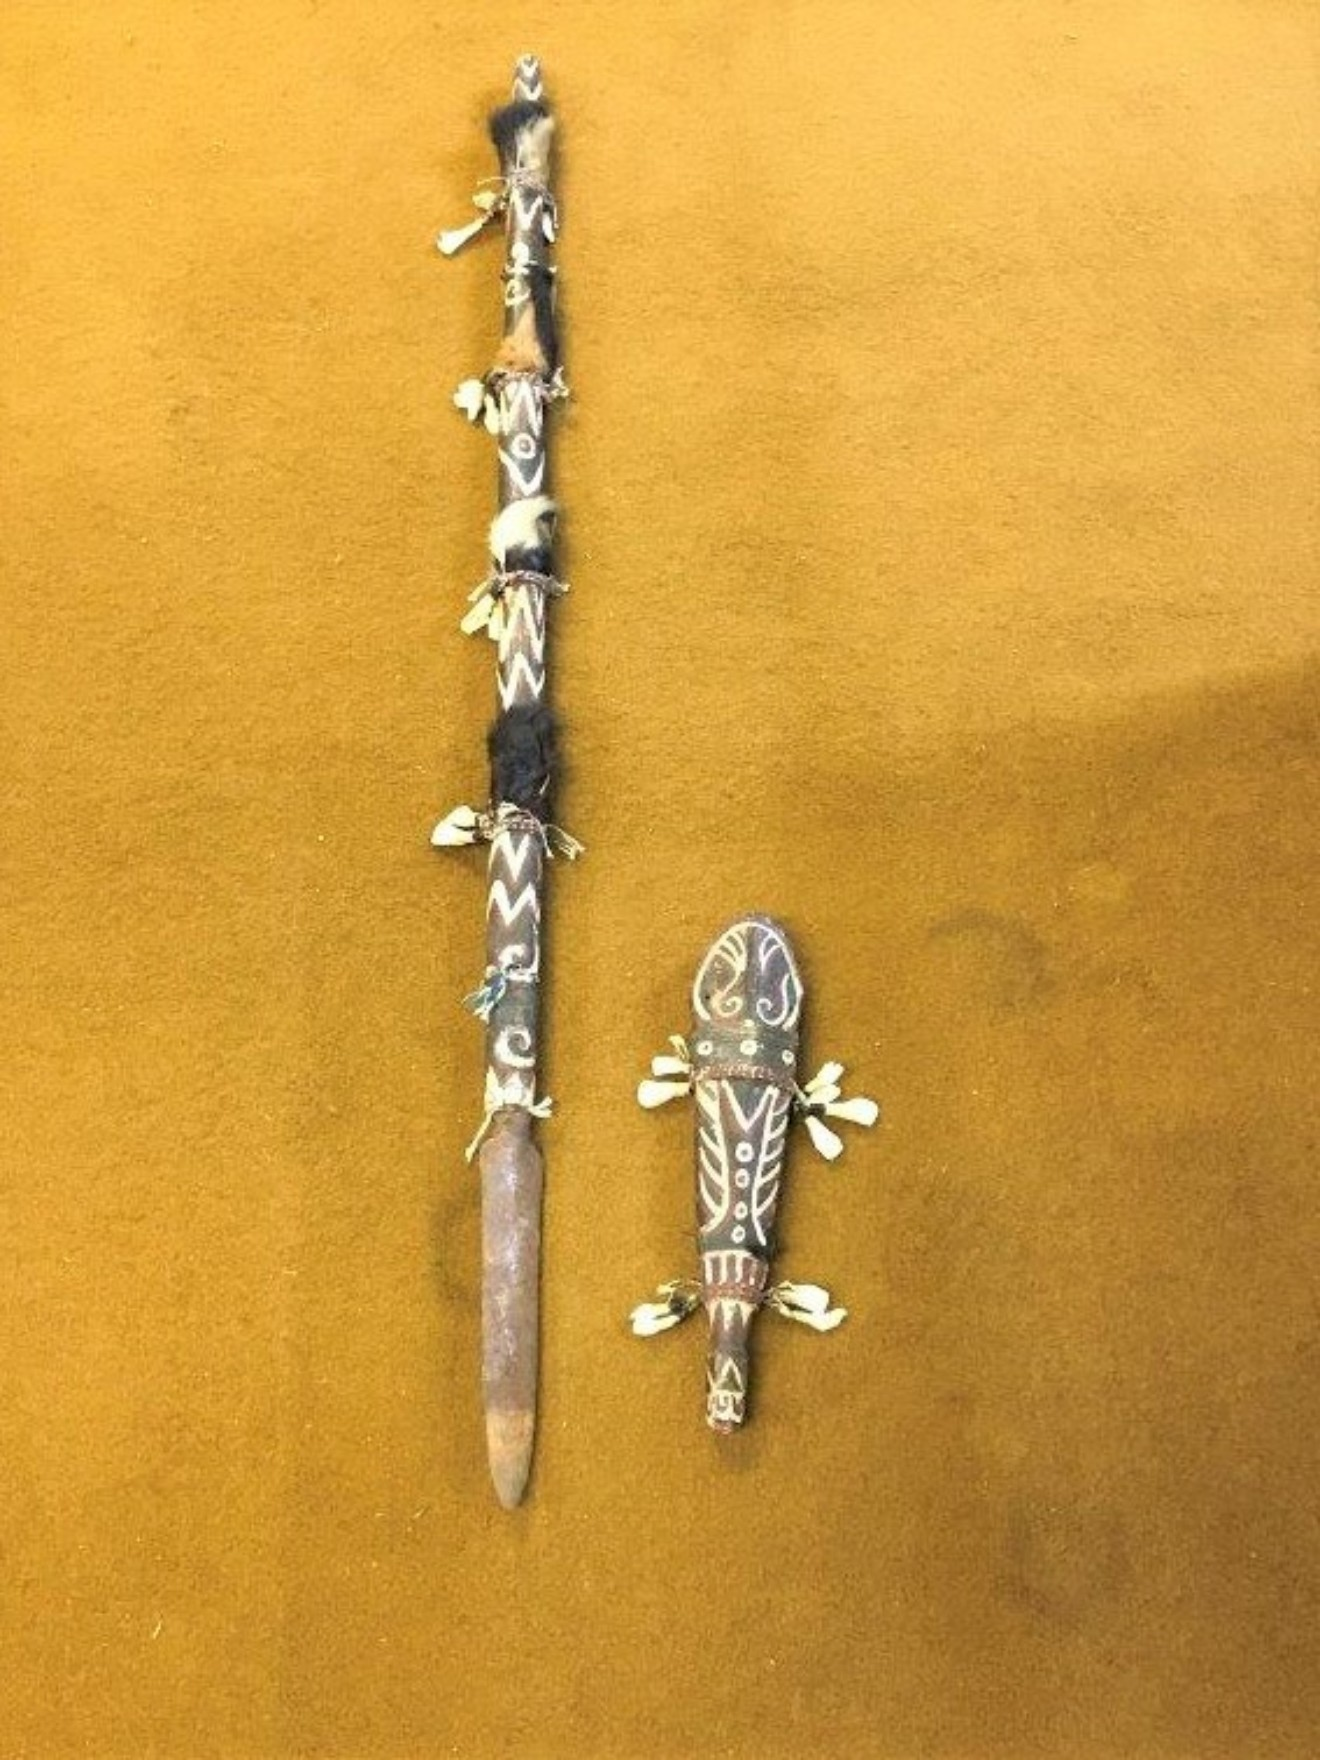 Indonesian Ceremonial Tribal Spear